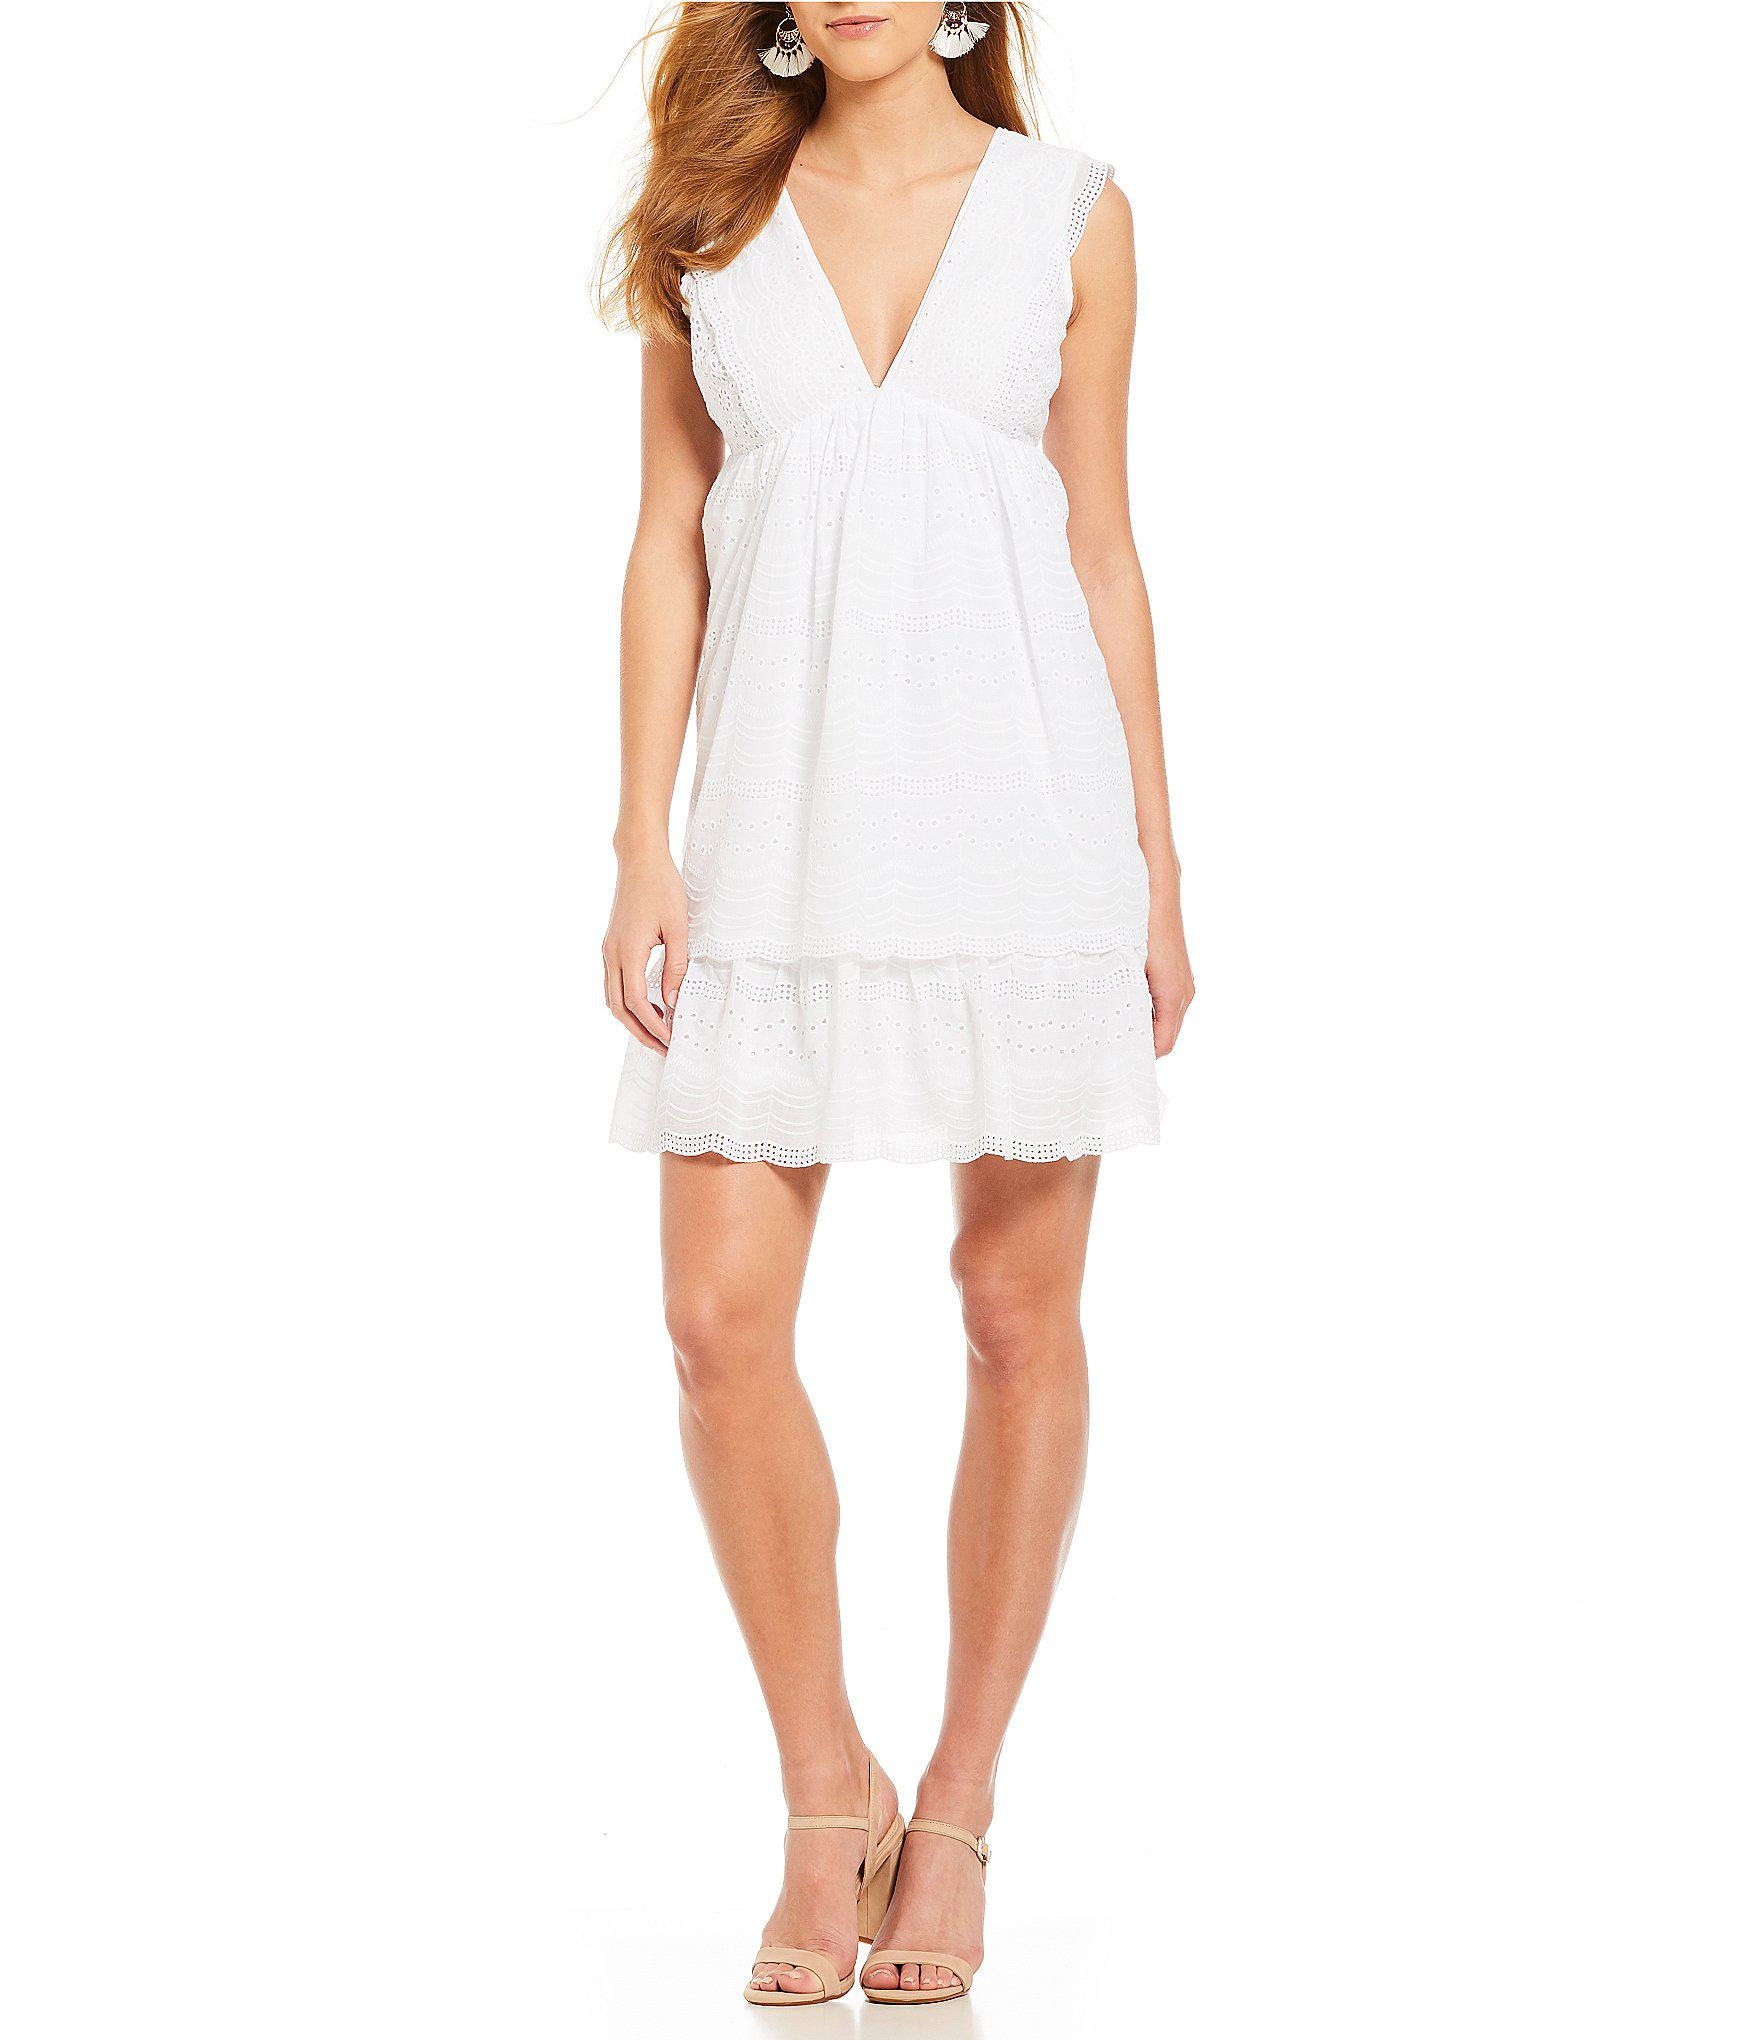 0b644a4c6fb Gianni Bini Lila Tiered Eyelet Lace Dress in White - Lyst